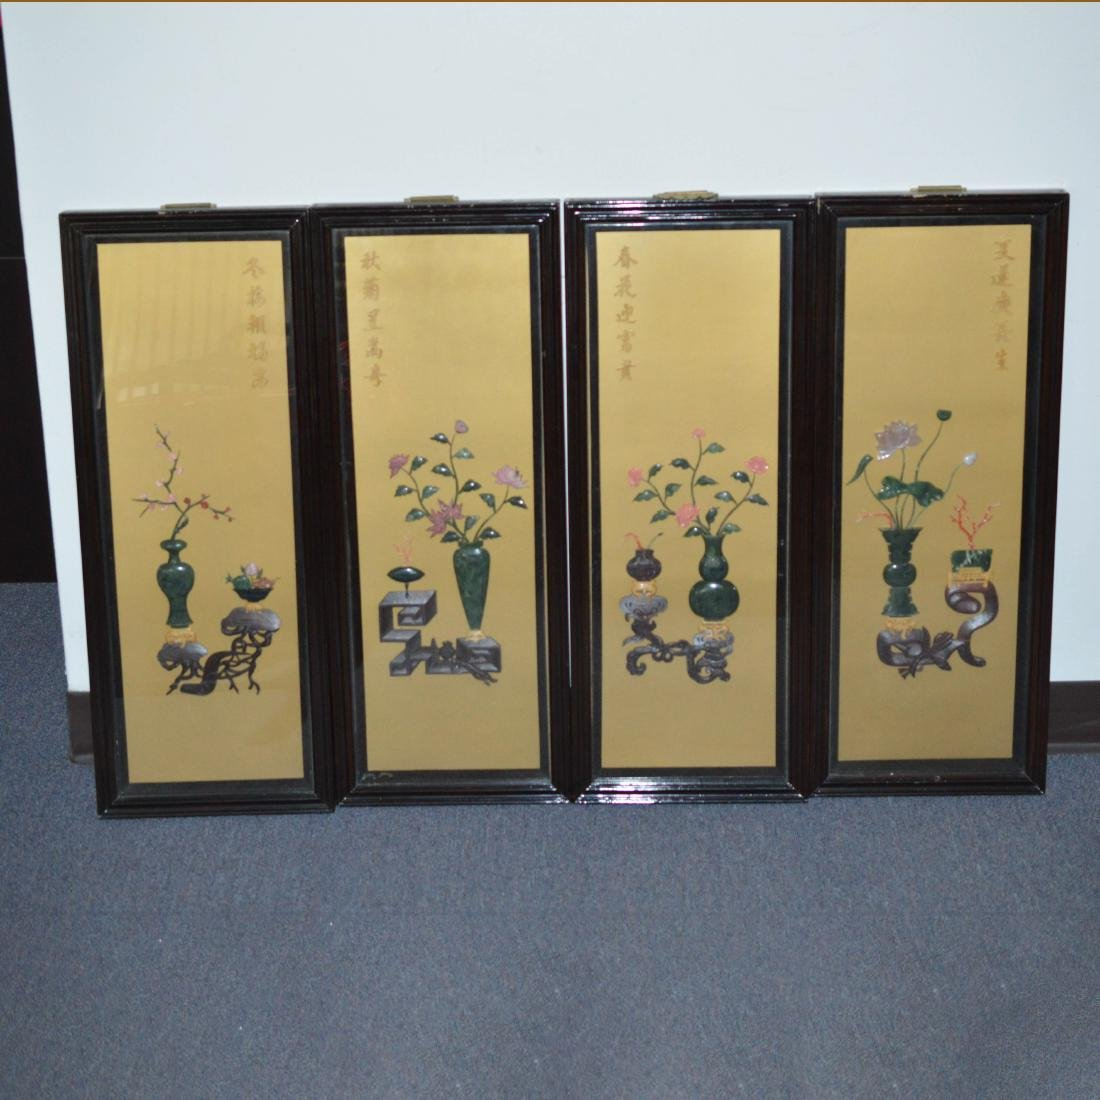 Set of Four Hanging Screen